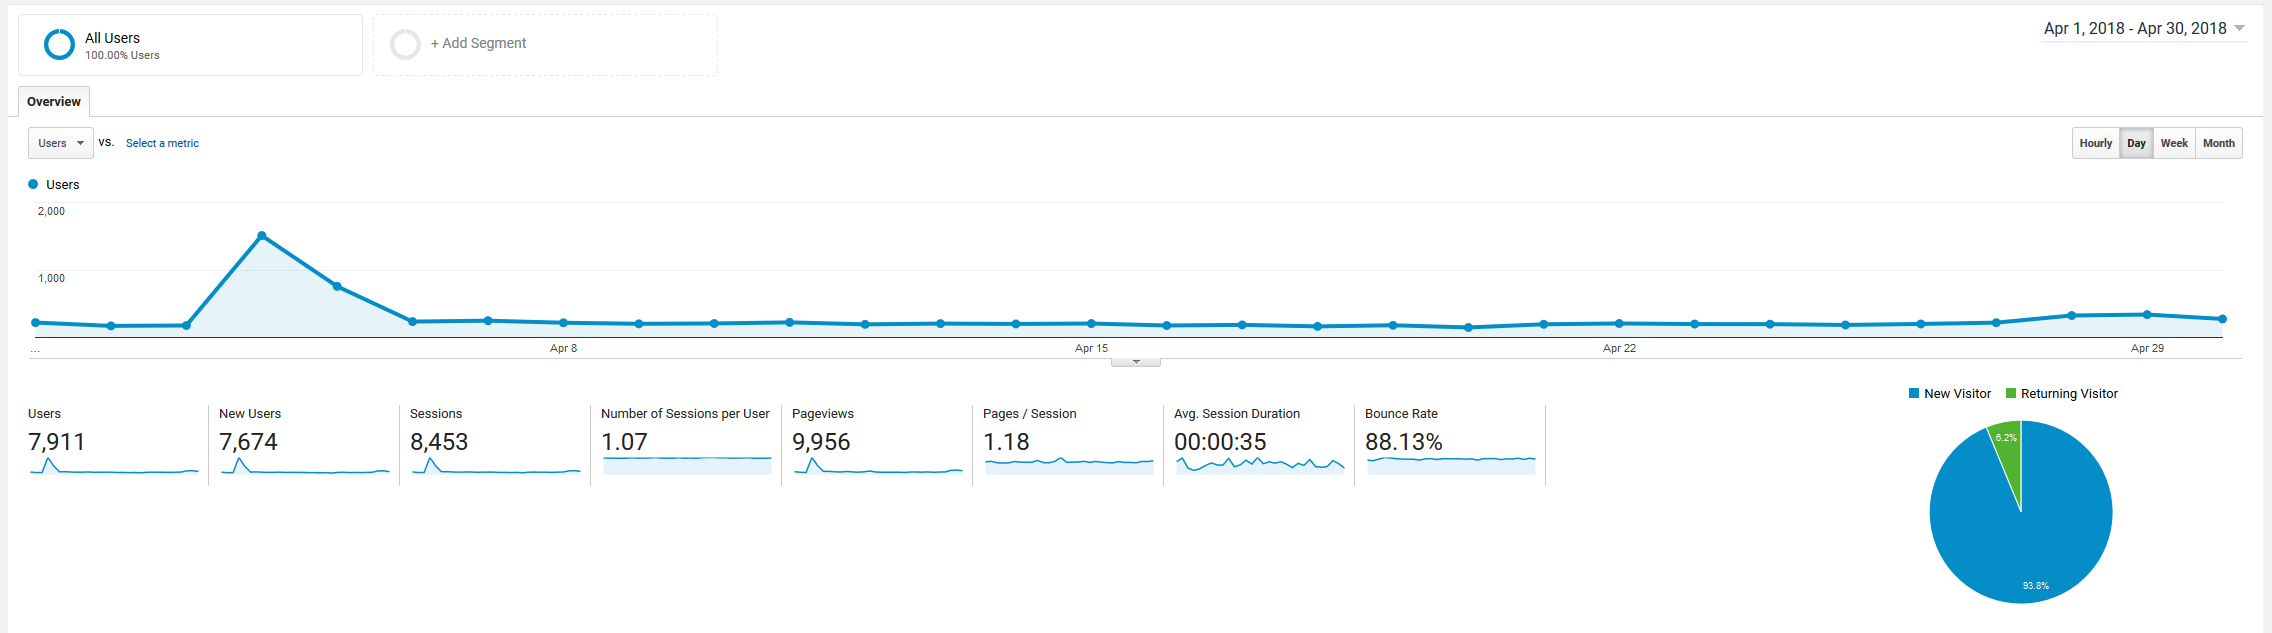 April 2018 Google Analytics roseclearfield.com | https://www.roseclearfield.com